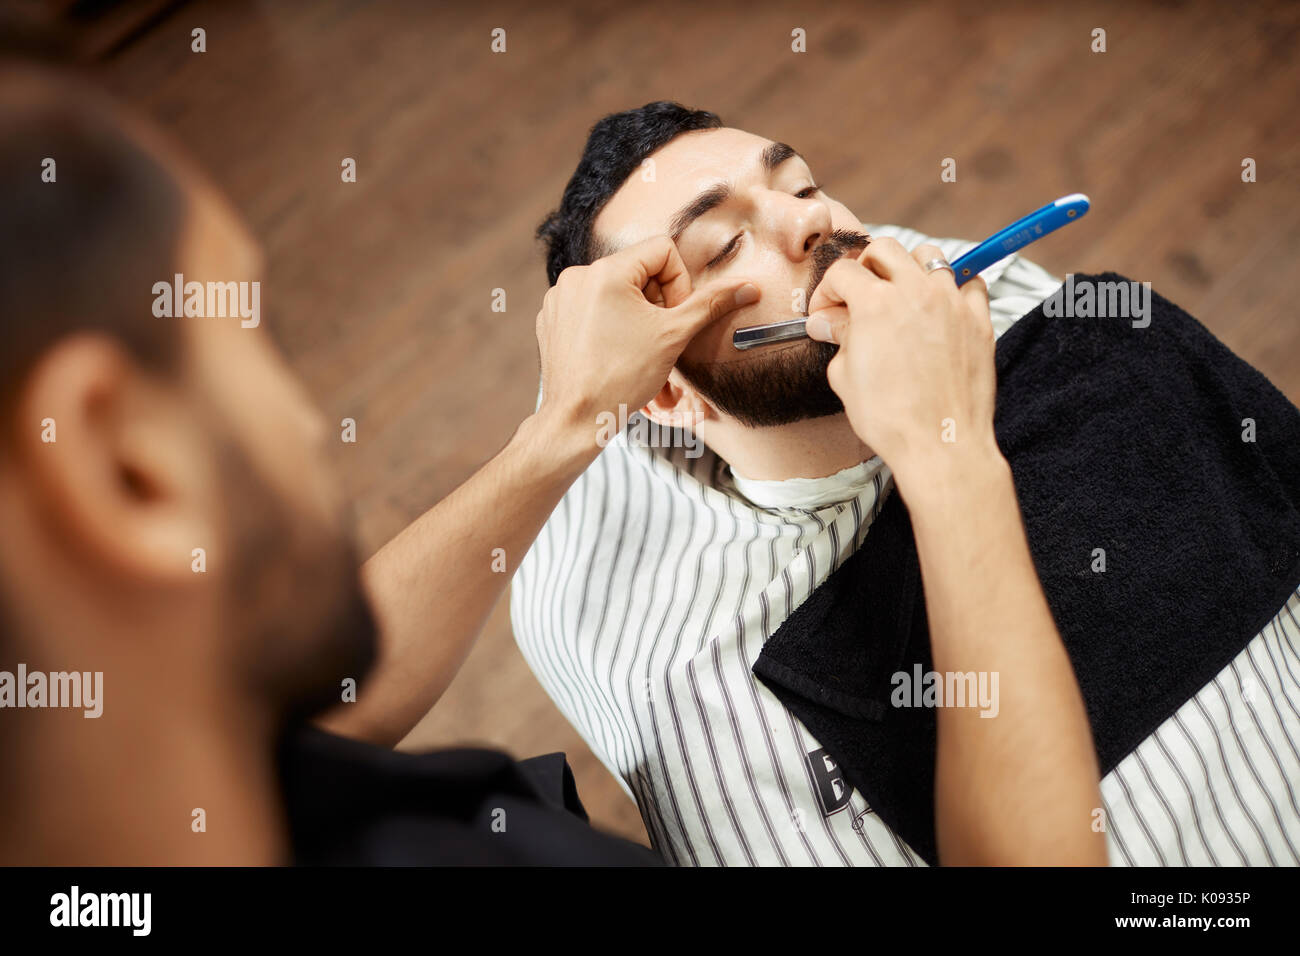 Professional shaving man in chair - Stock Image